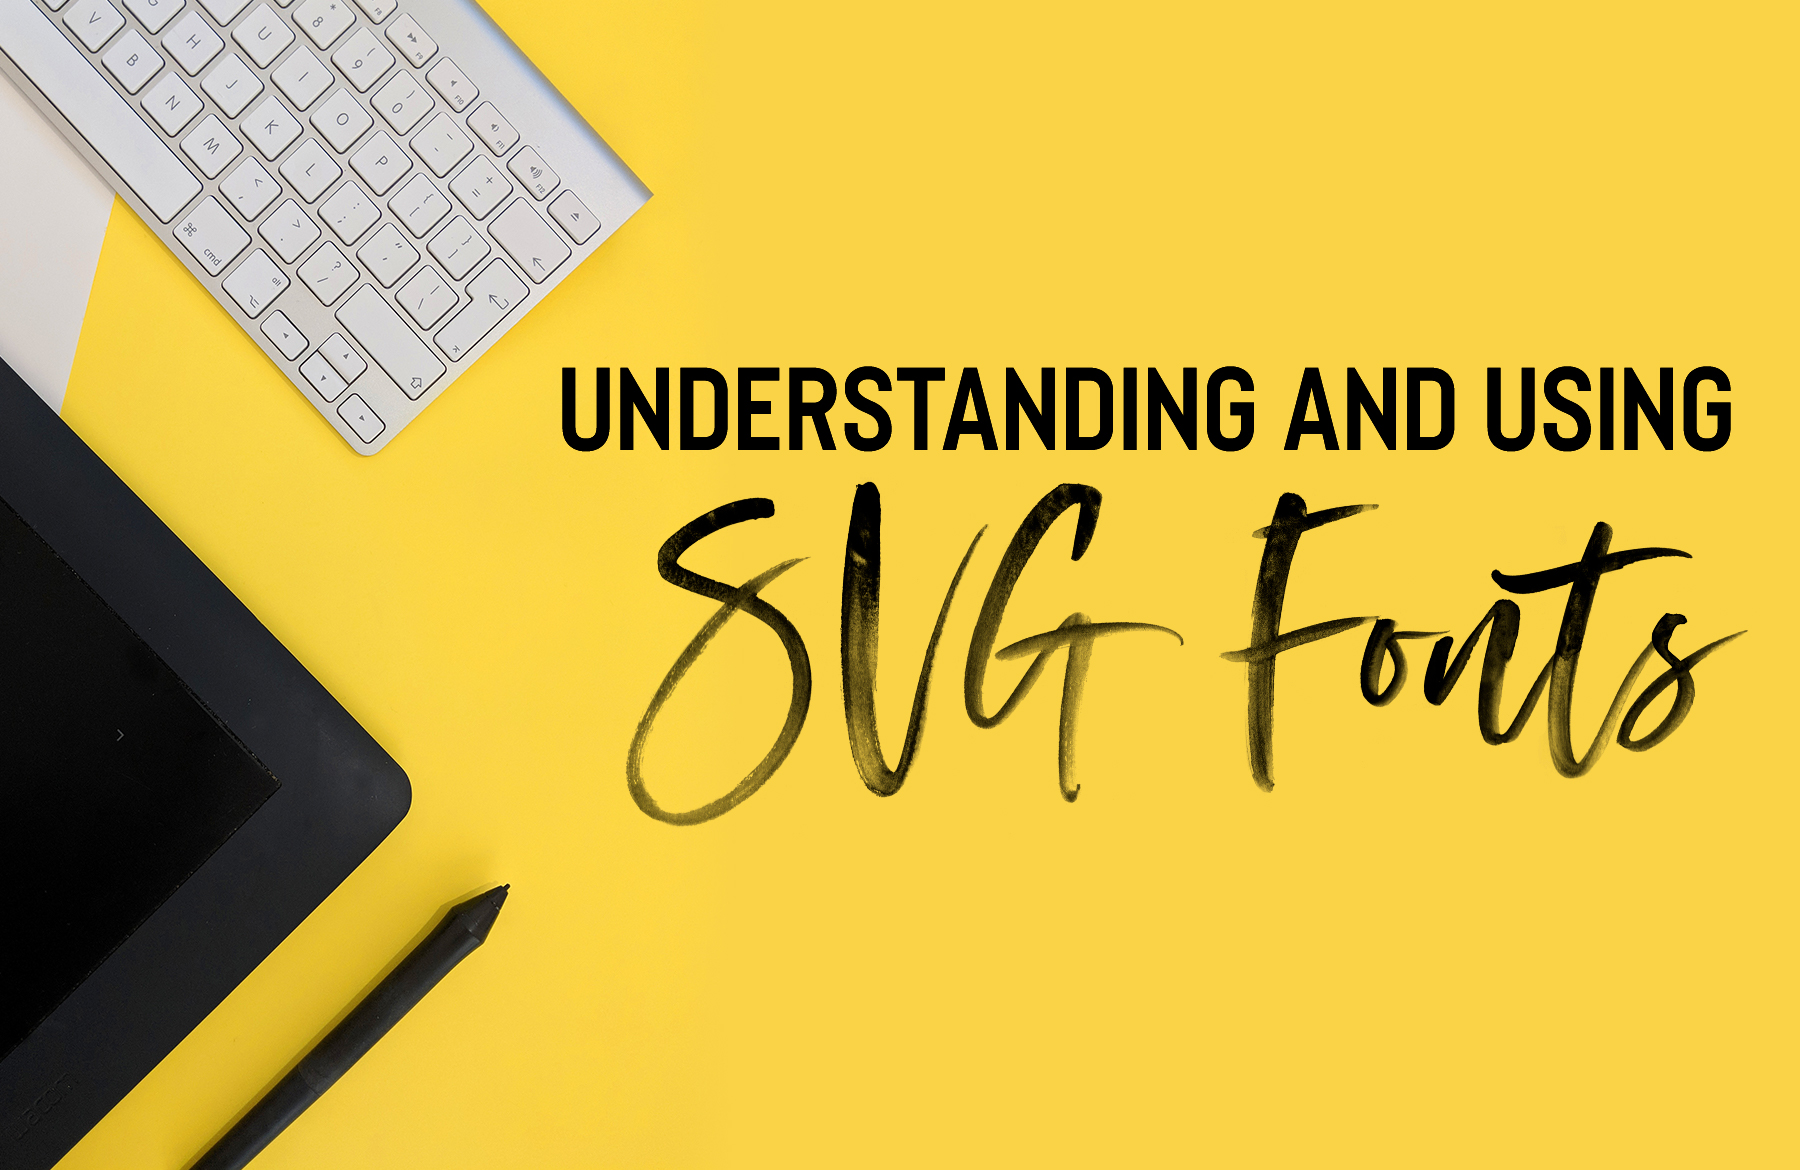 Understanding and Using SVG Fonts in Photoshop and Illustrator